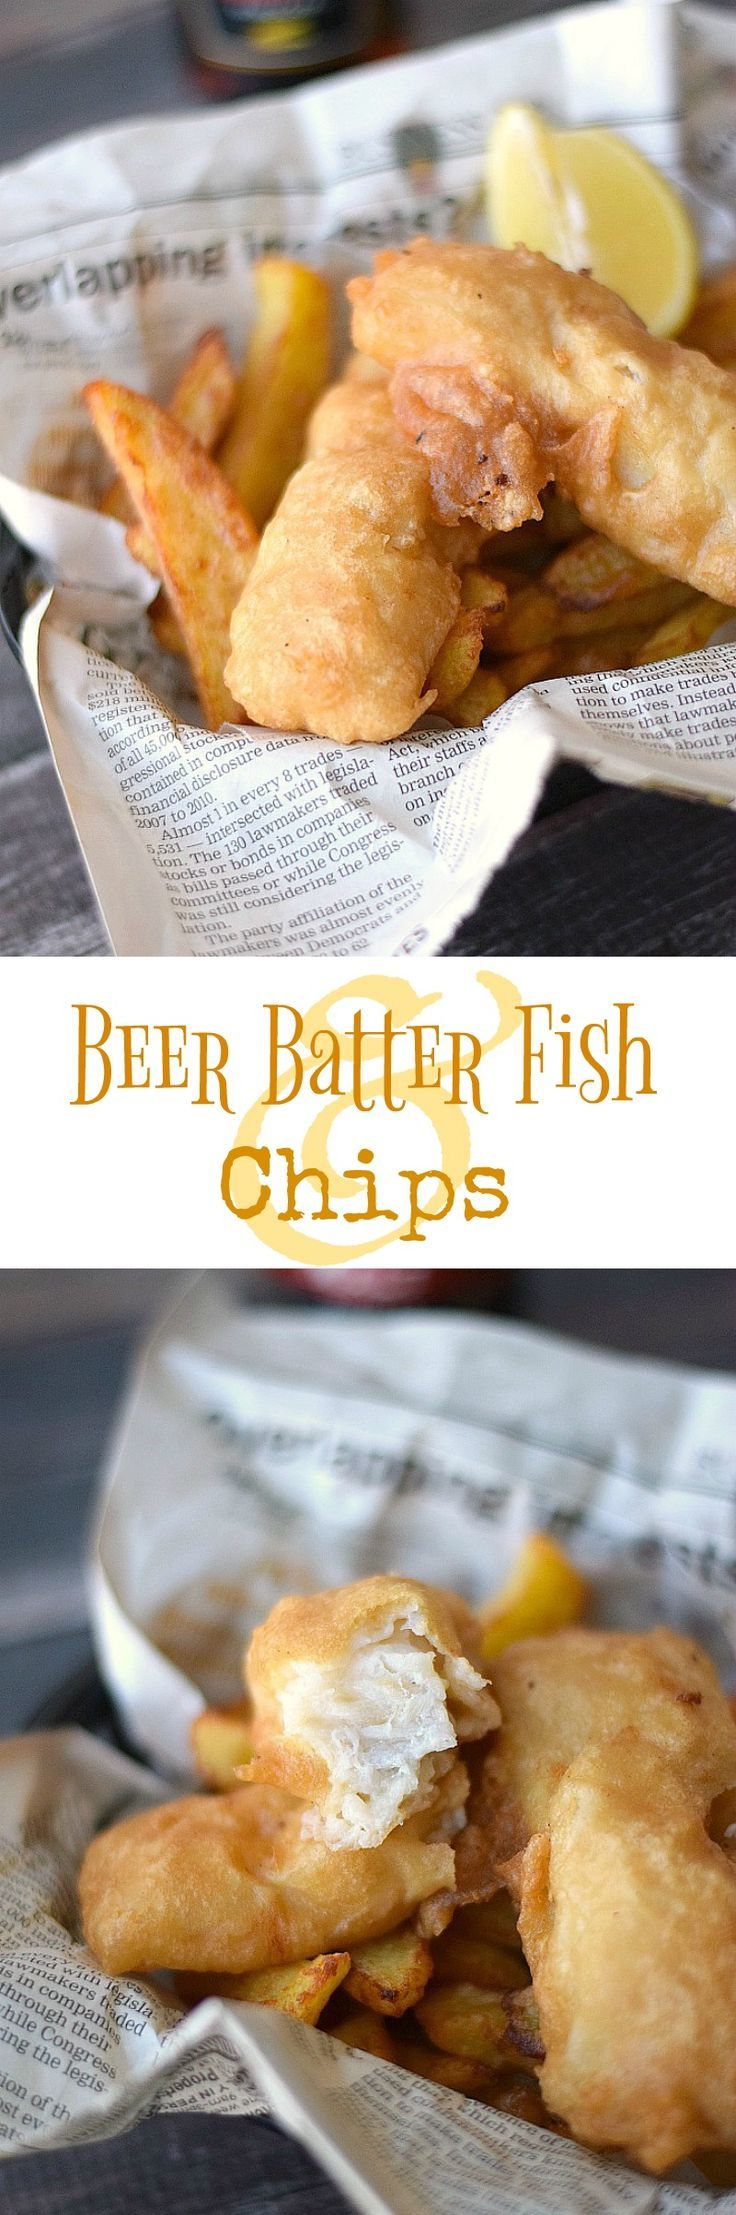 This traditional-style Beer Batter Fish is served along side Homemade French Fries for the perfect comfort food meal | http://cookingwithcurls.com